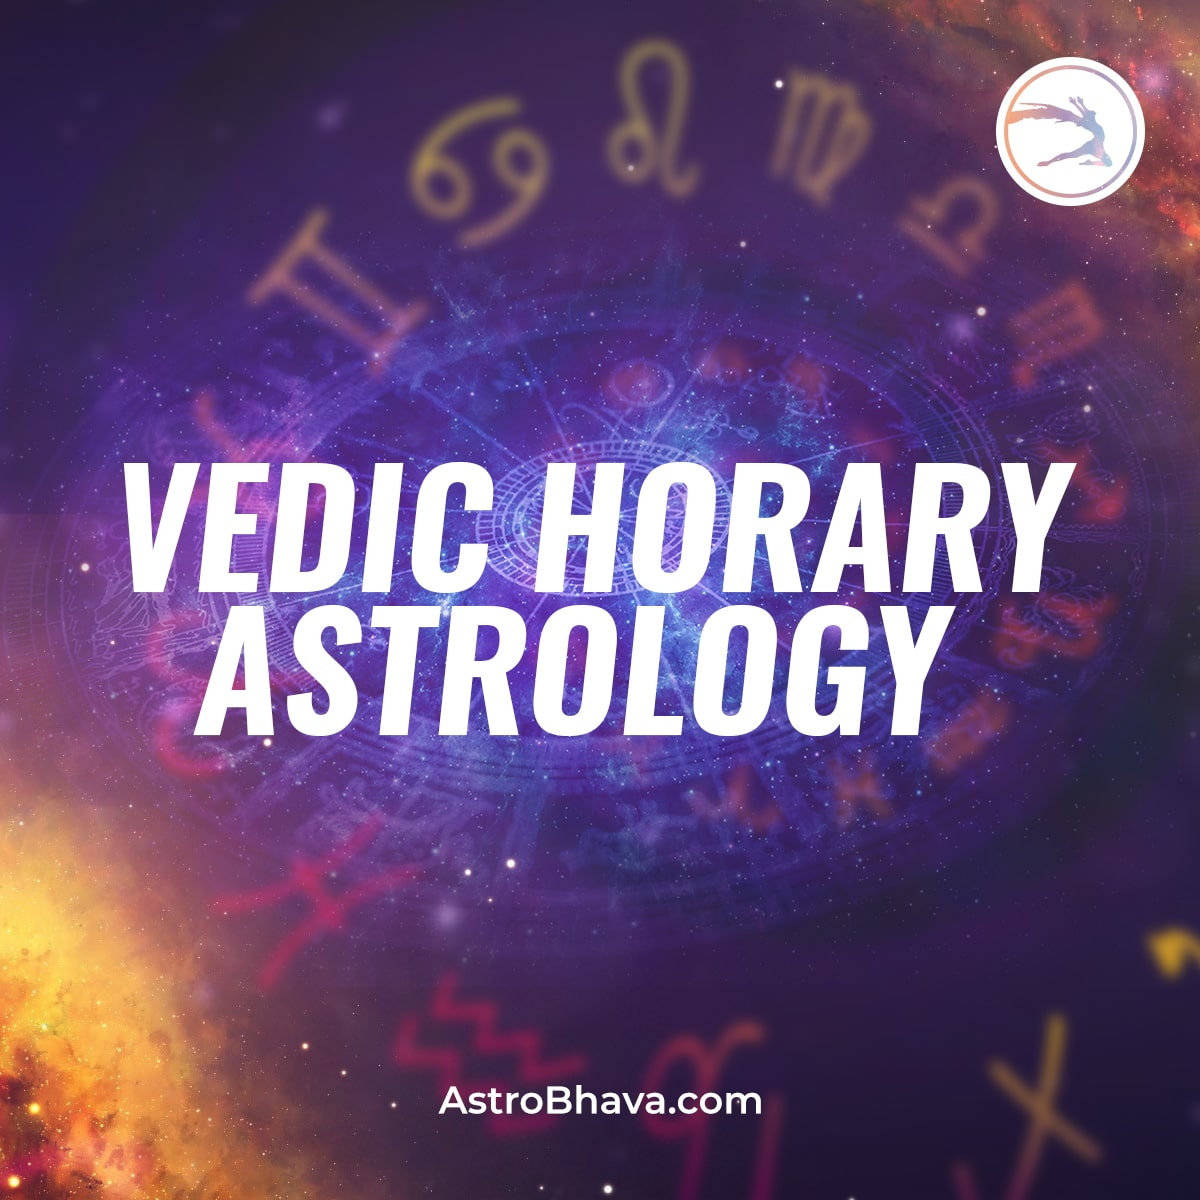 Vedic Horary Astrology: An Ancient Indian Proven Astrological Technique